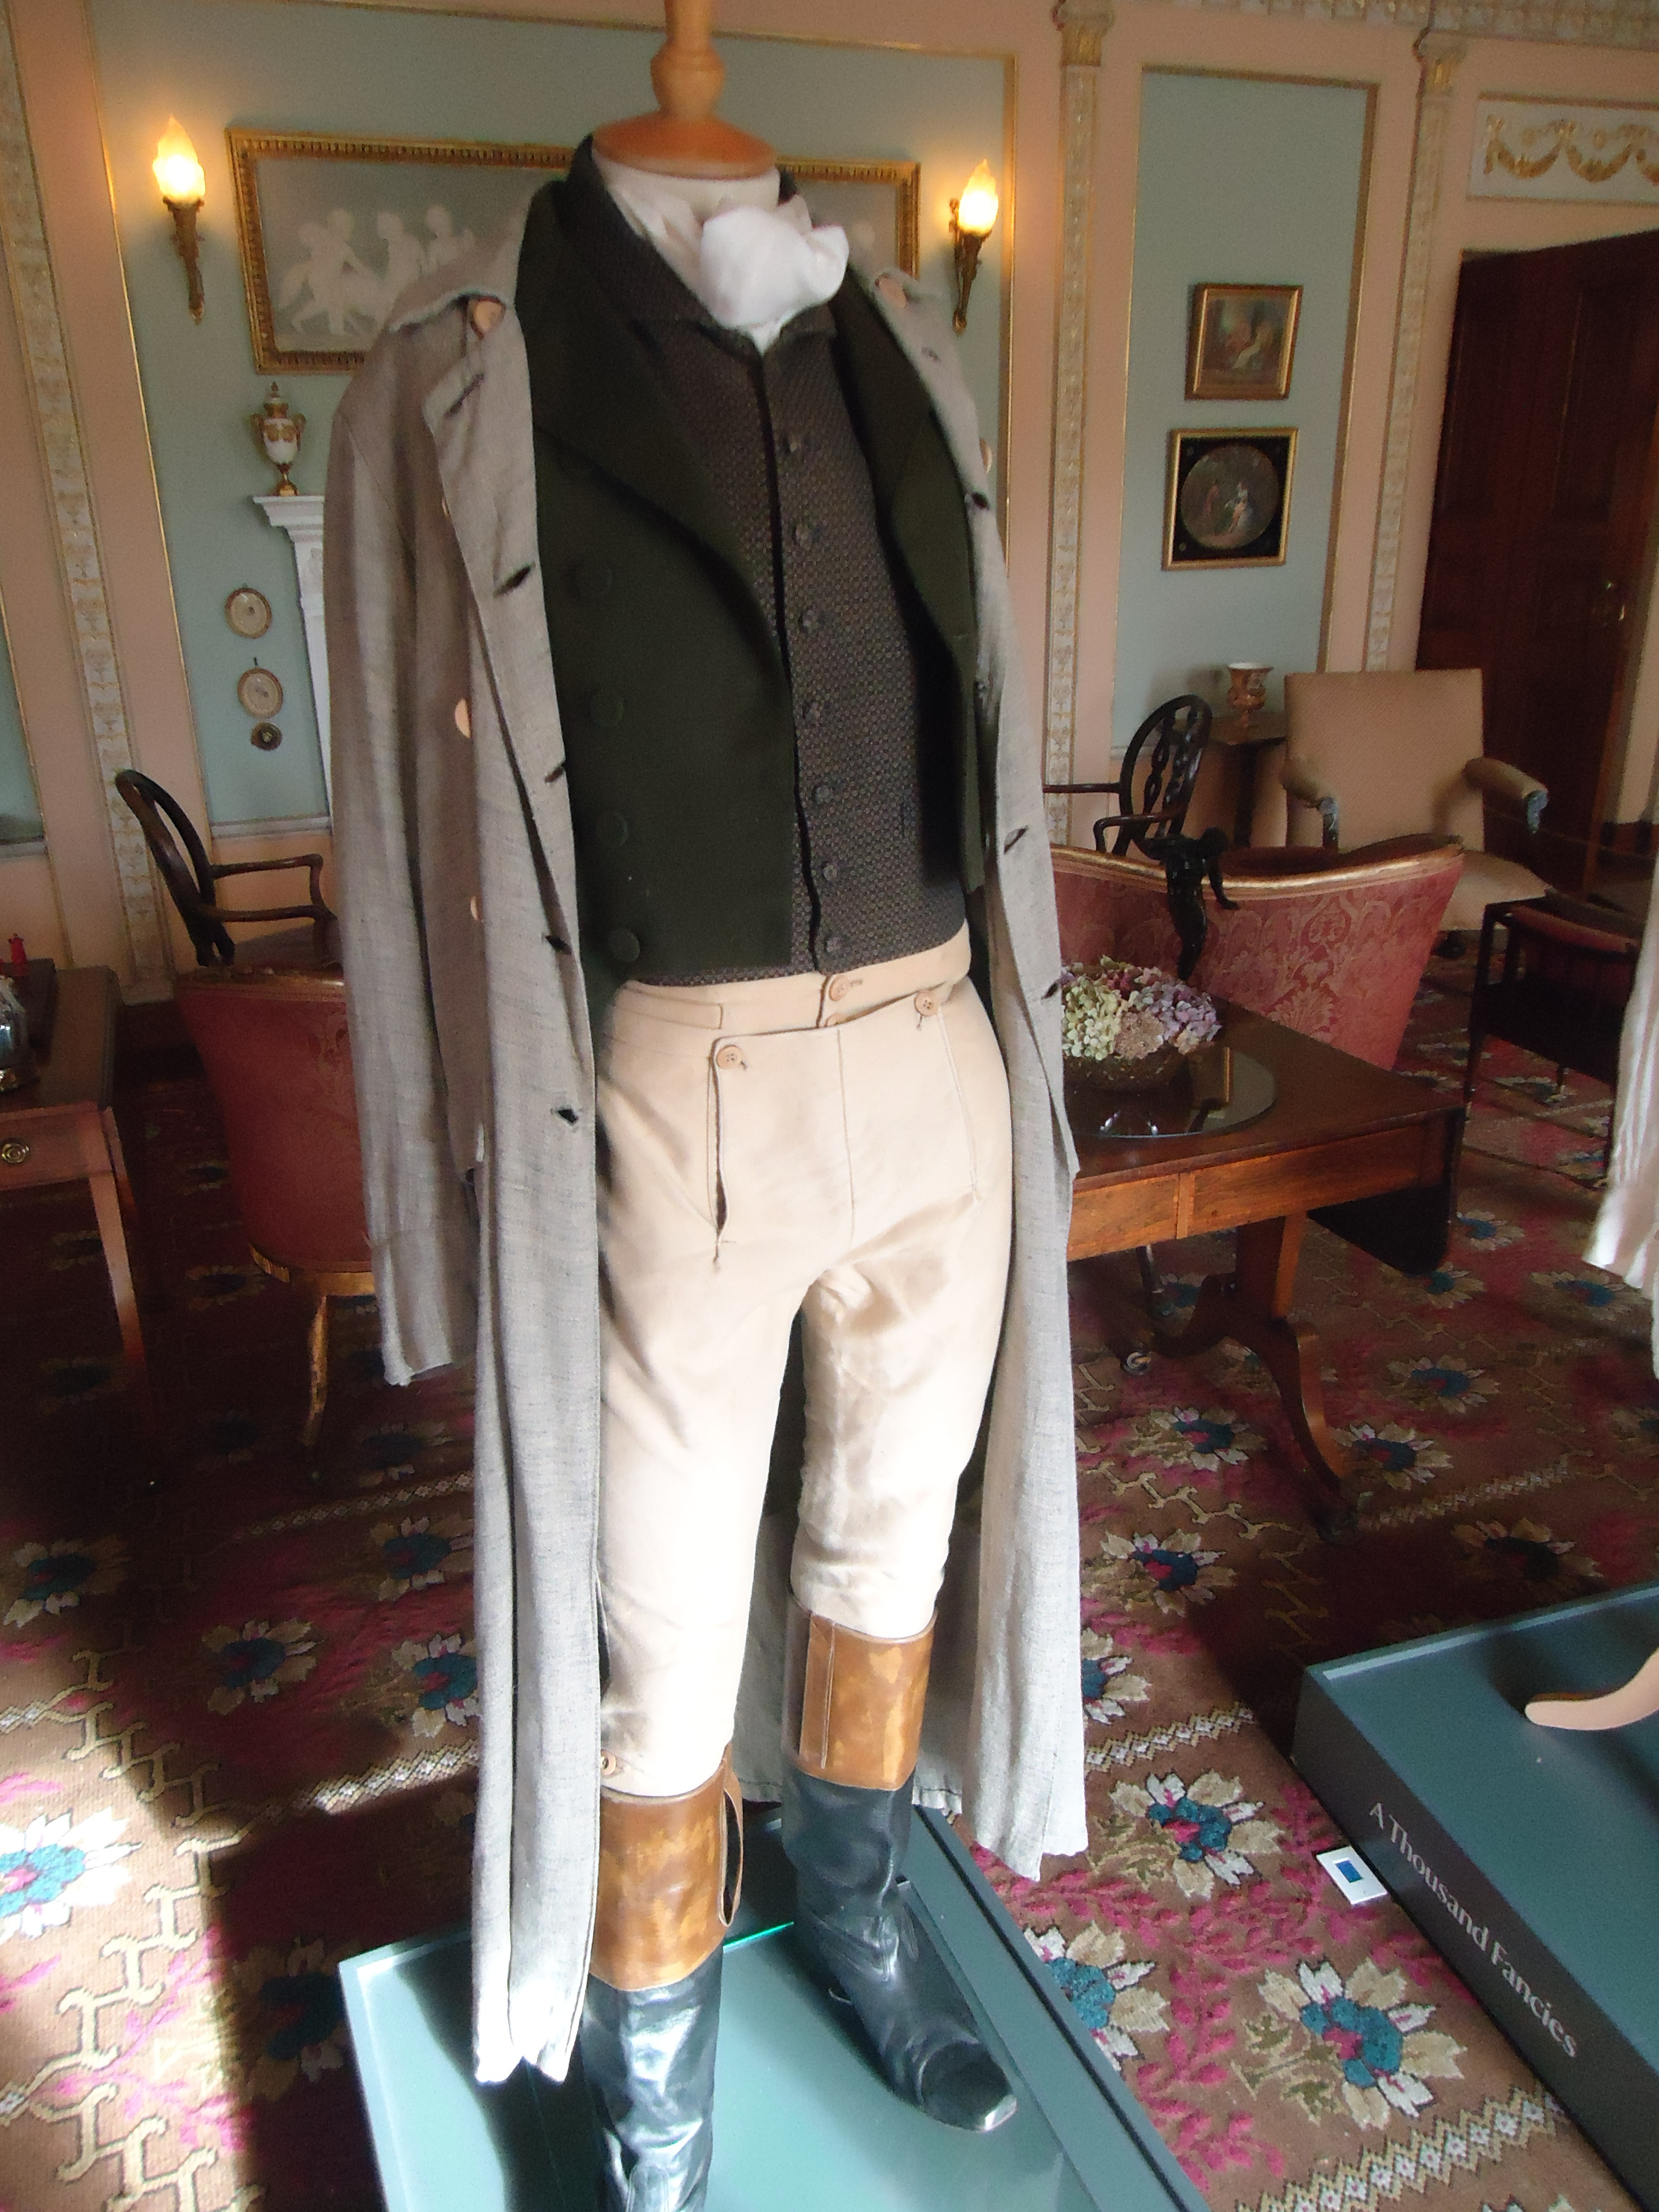 Berrington Hall - HandBound Research, Tv and Period Drama costumes, BBC Pride and Prejudice Costumes - Mr Darcy, Theatrical ~Period Costume. made to measure period clothing and costume, bespoke historical costumes